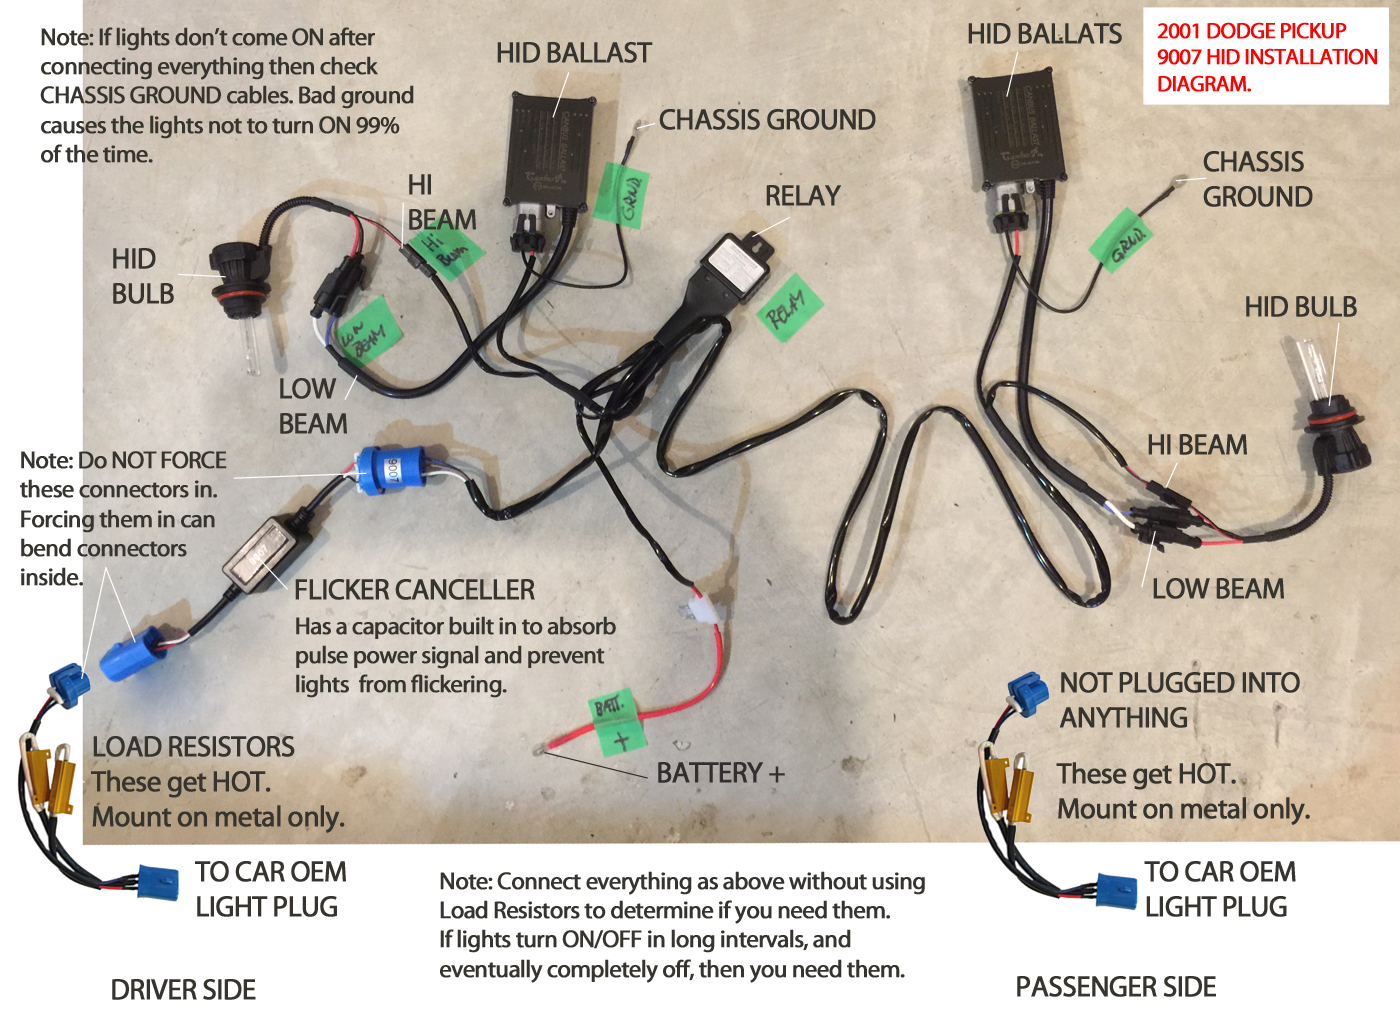 2001-dodge-9007-diagram Xenon Hid Headlight Wiring Diagram on thinline ii, proximity keypad card reader, headlight conversion, edge evo, fob reader, lighting kit, headlight relay,